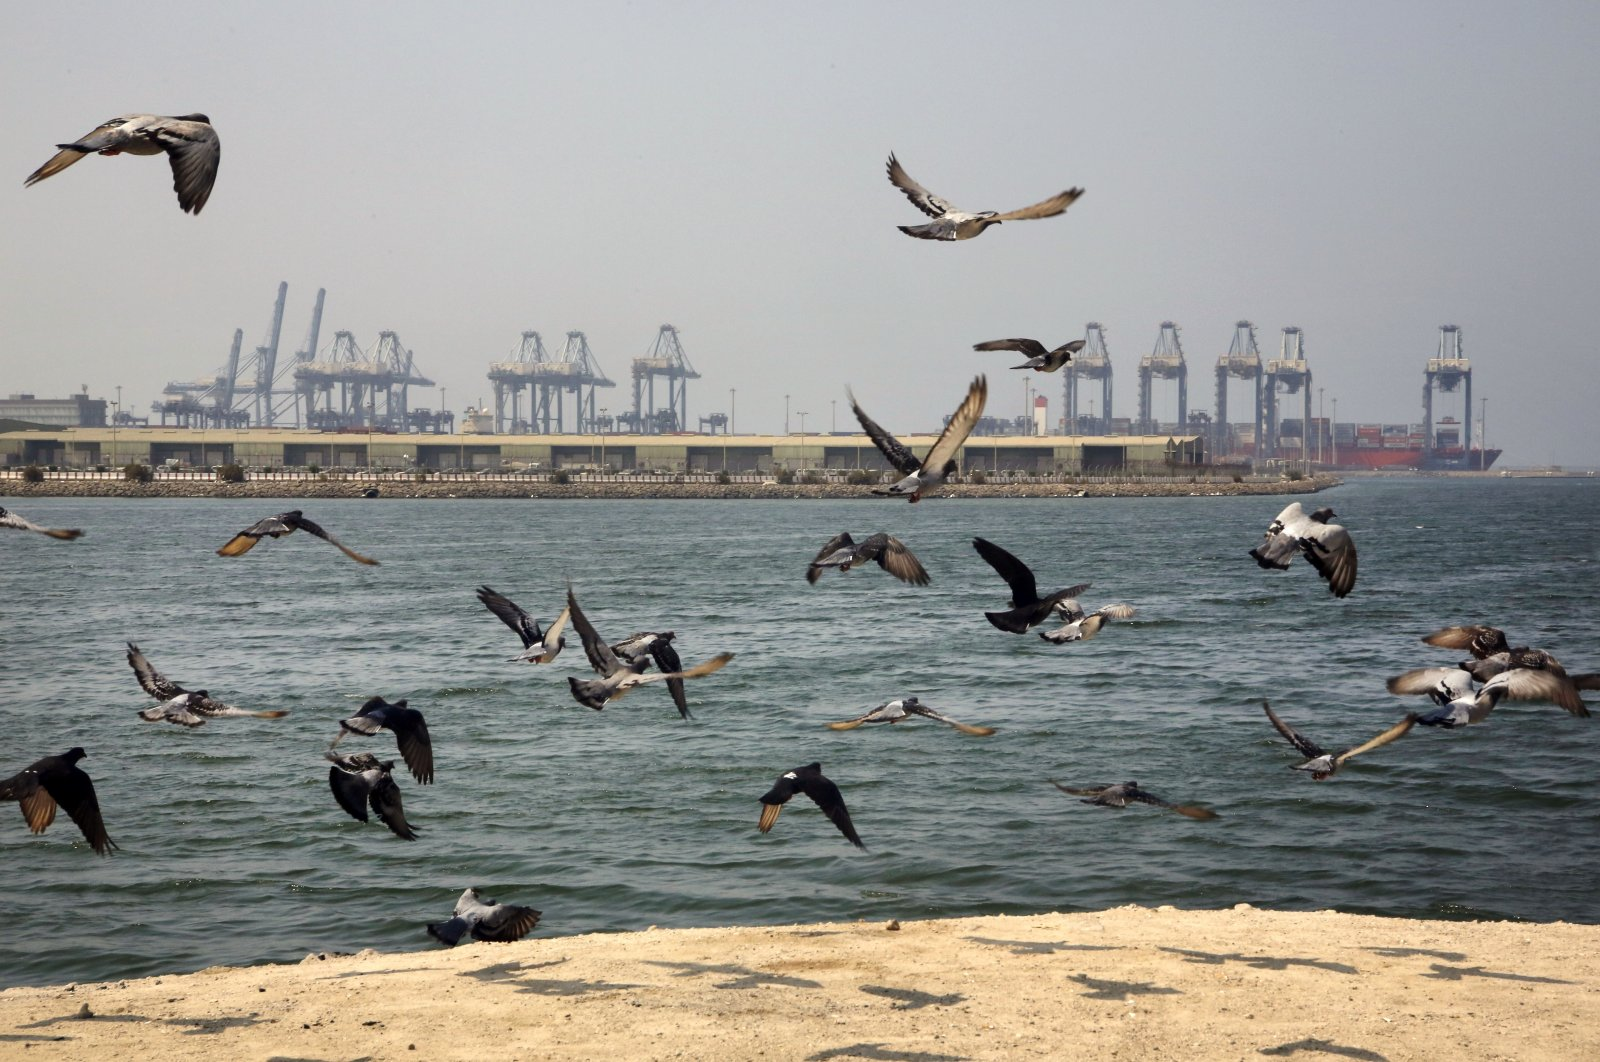 Seagulls fly in front of the Red Sea port city of Jiddah, Saudi Arabia, Oct. 11, 2019. (AP Photo)